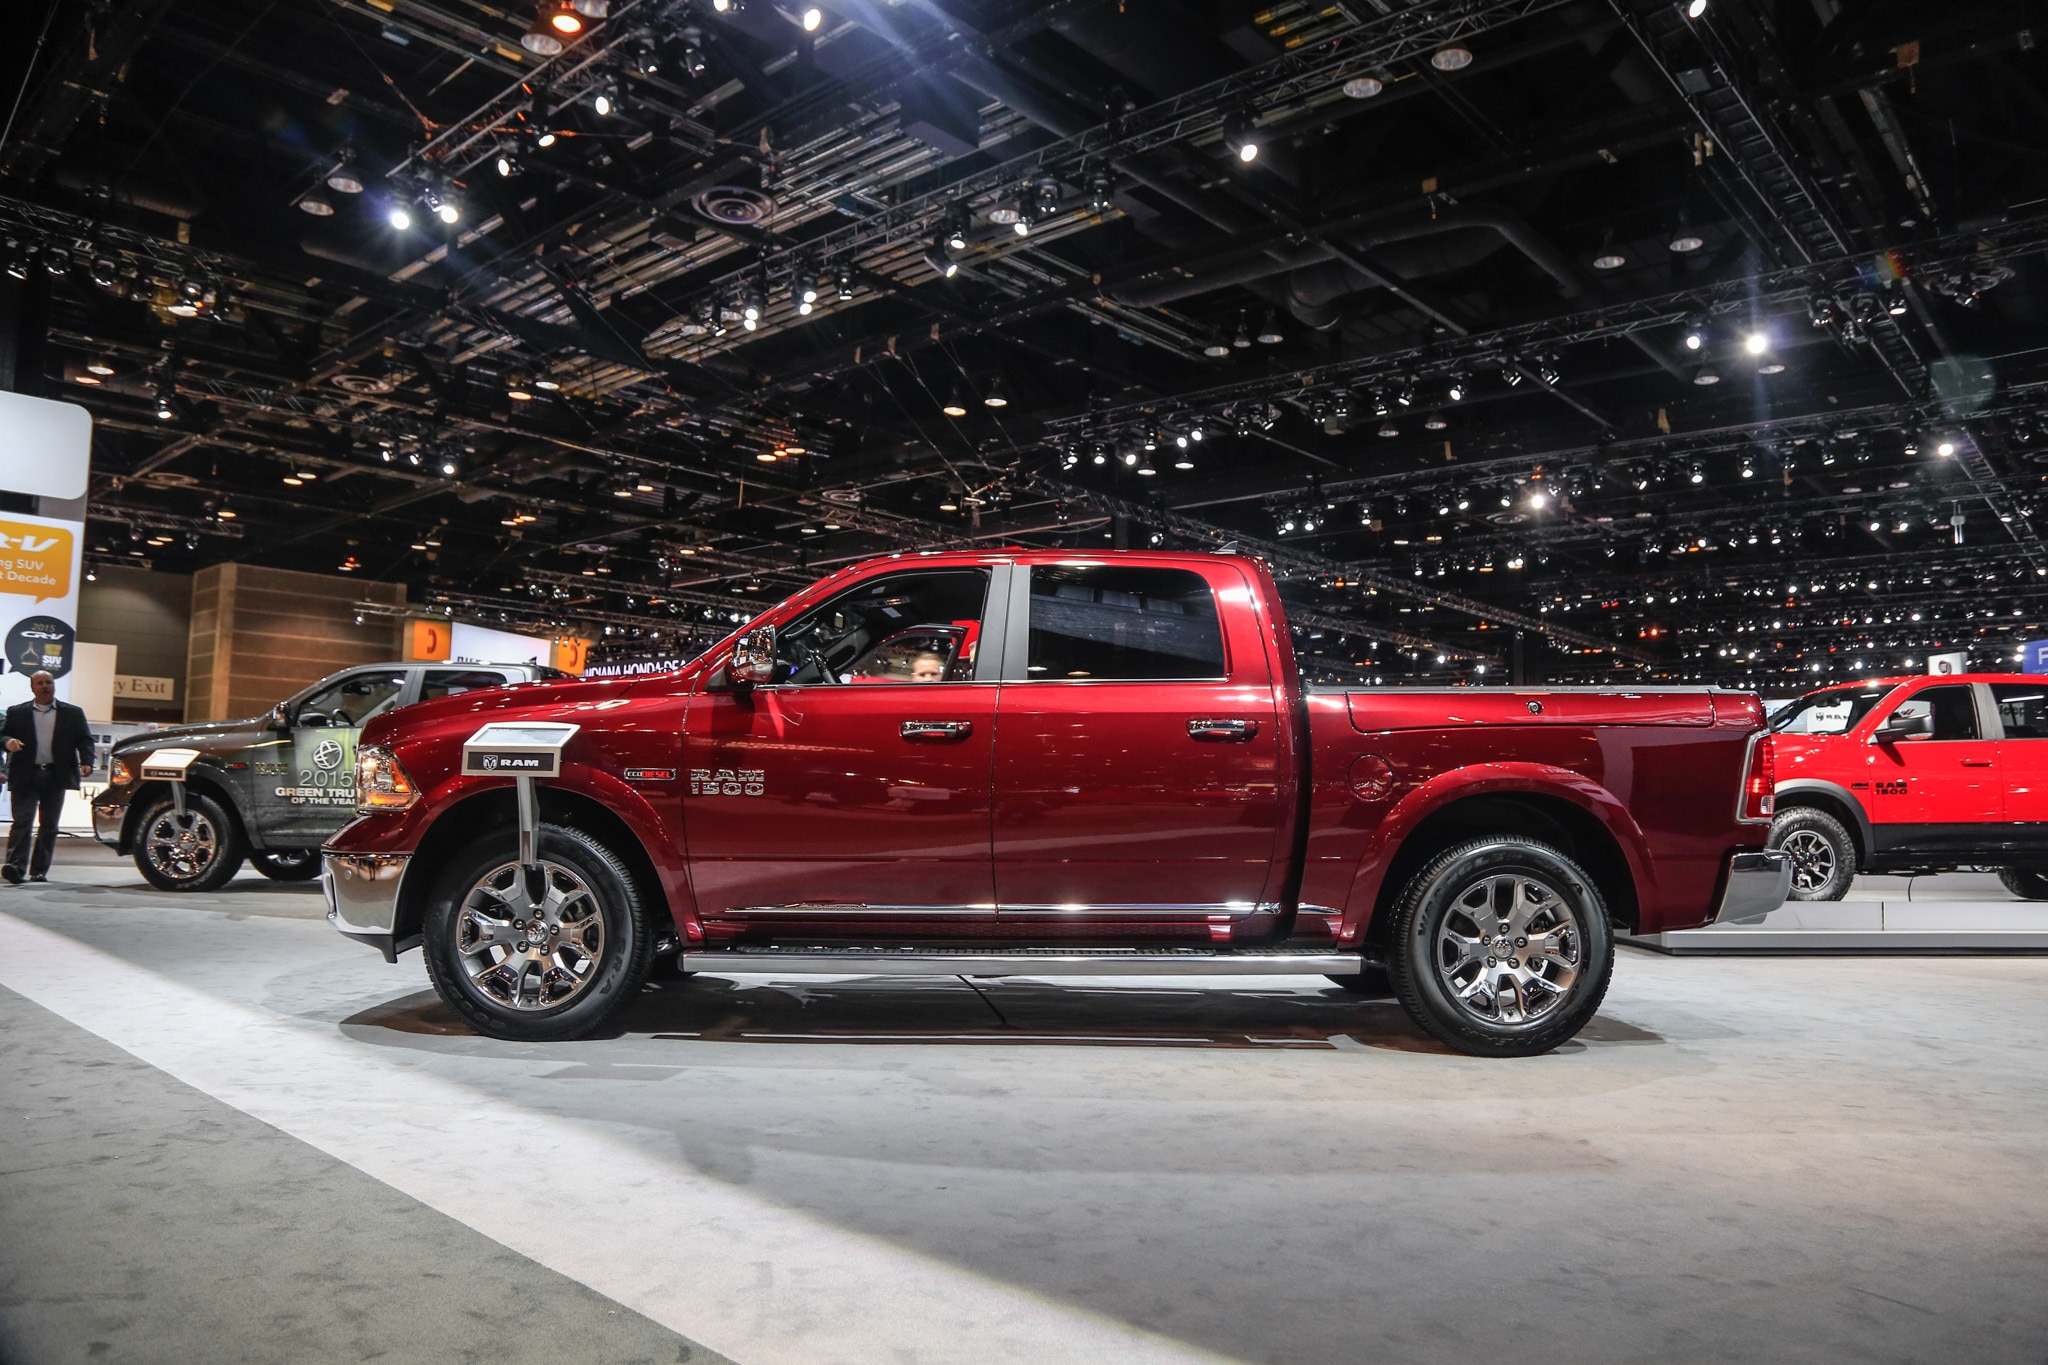 2015 ram 1500 laramie limited trim updated. Black Bedroom Furniture Sets. Home Design Ideas